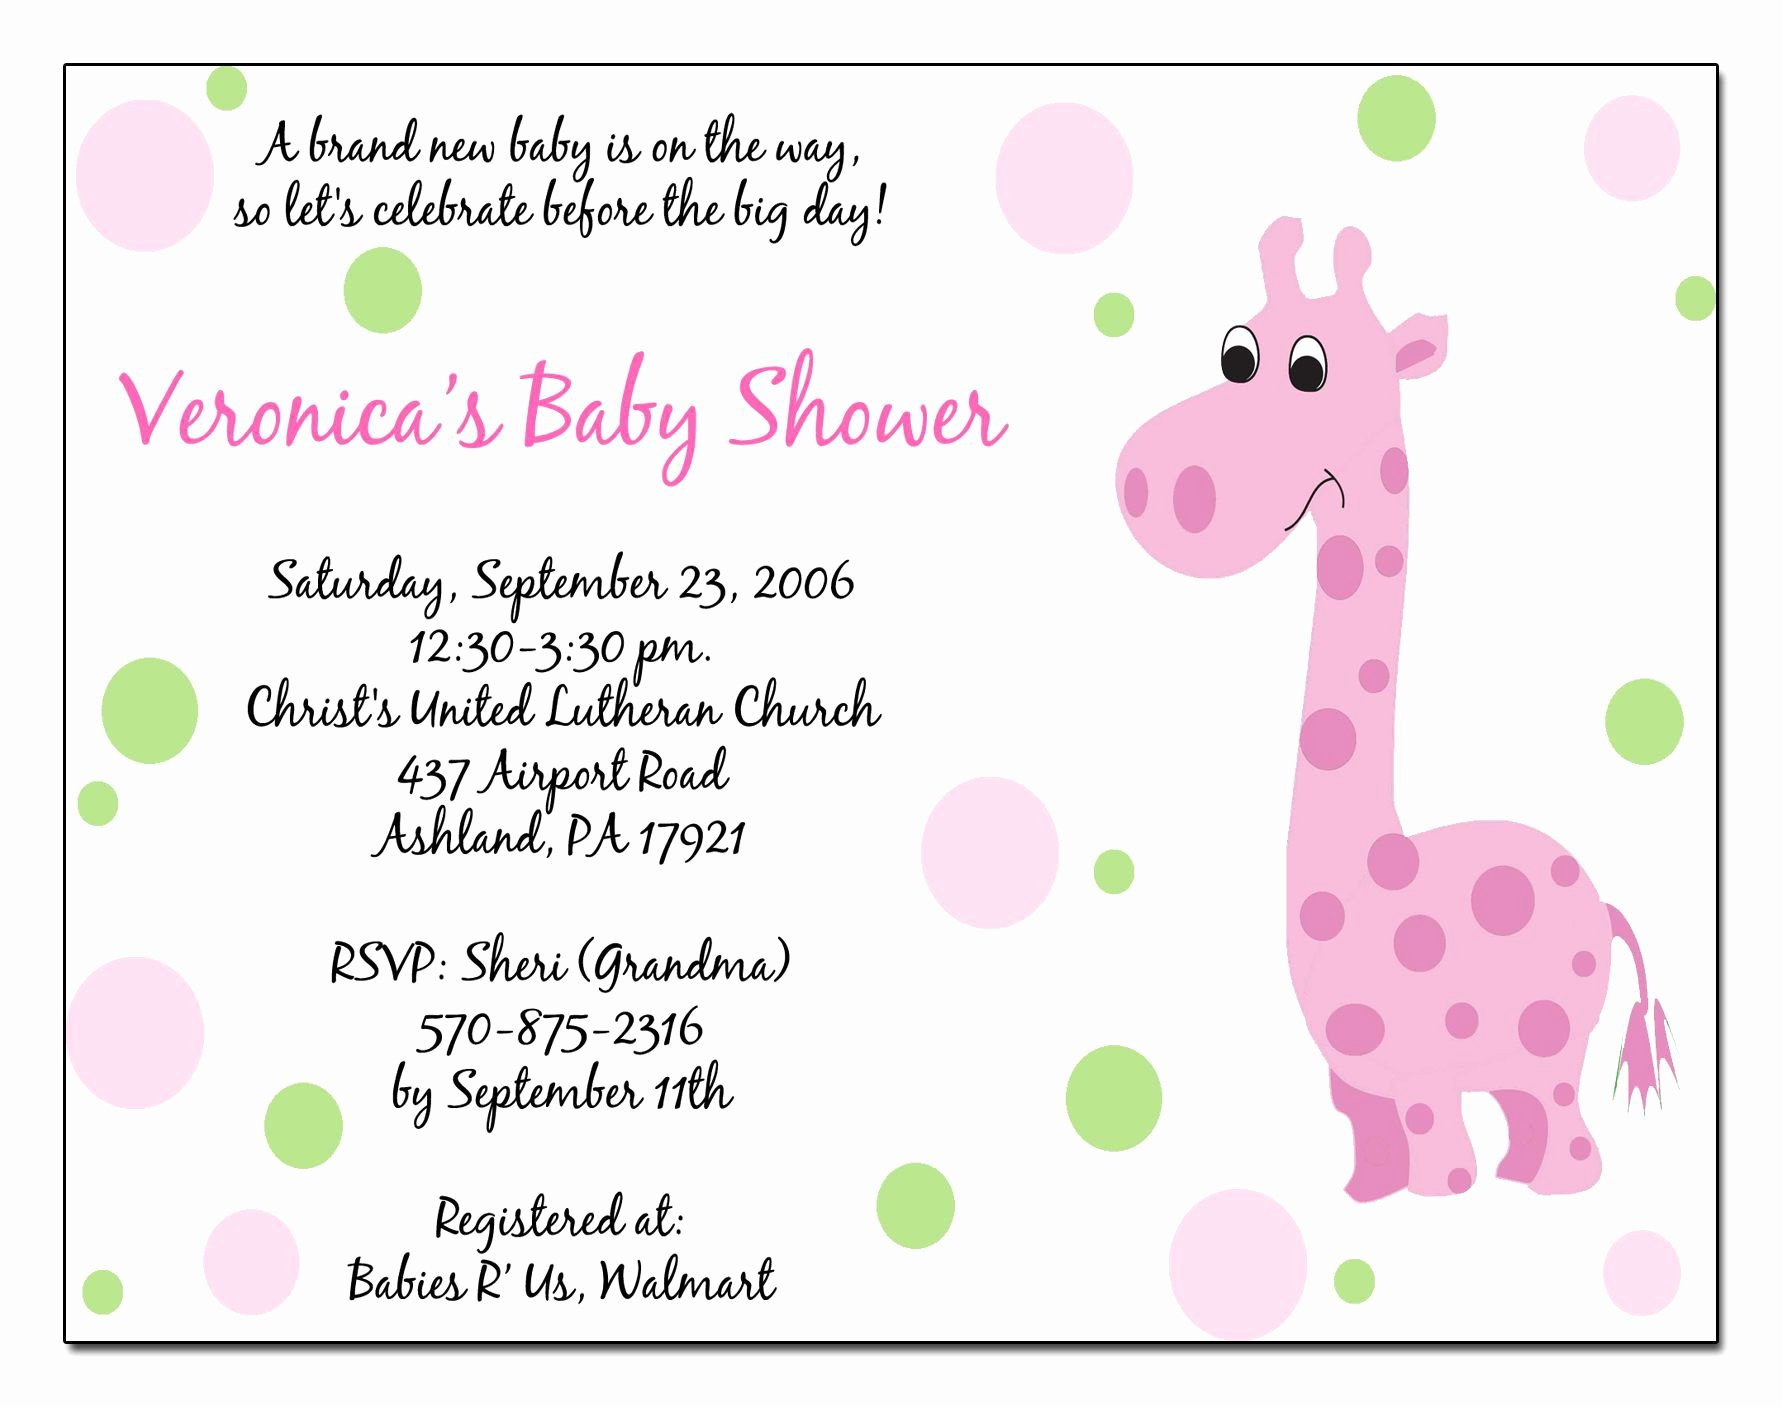 Template for Baby Shower Invitation Lovely Baby Shower Invitations Templates Baby Shower